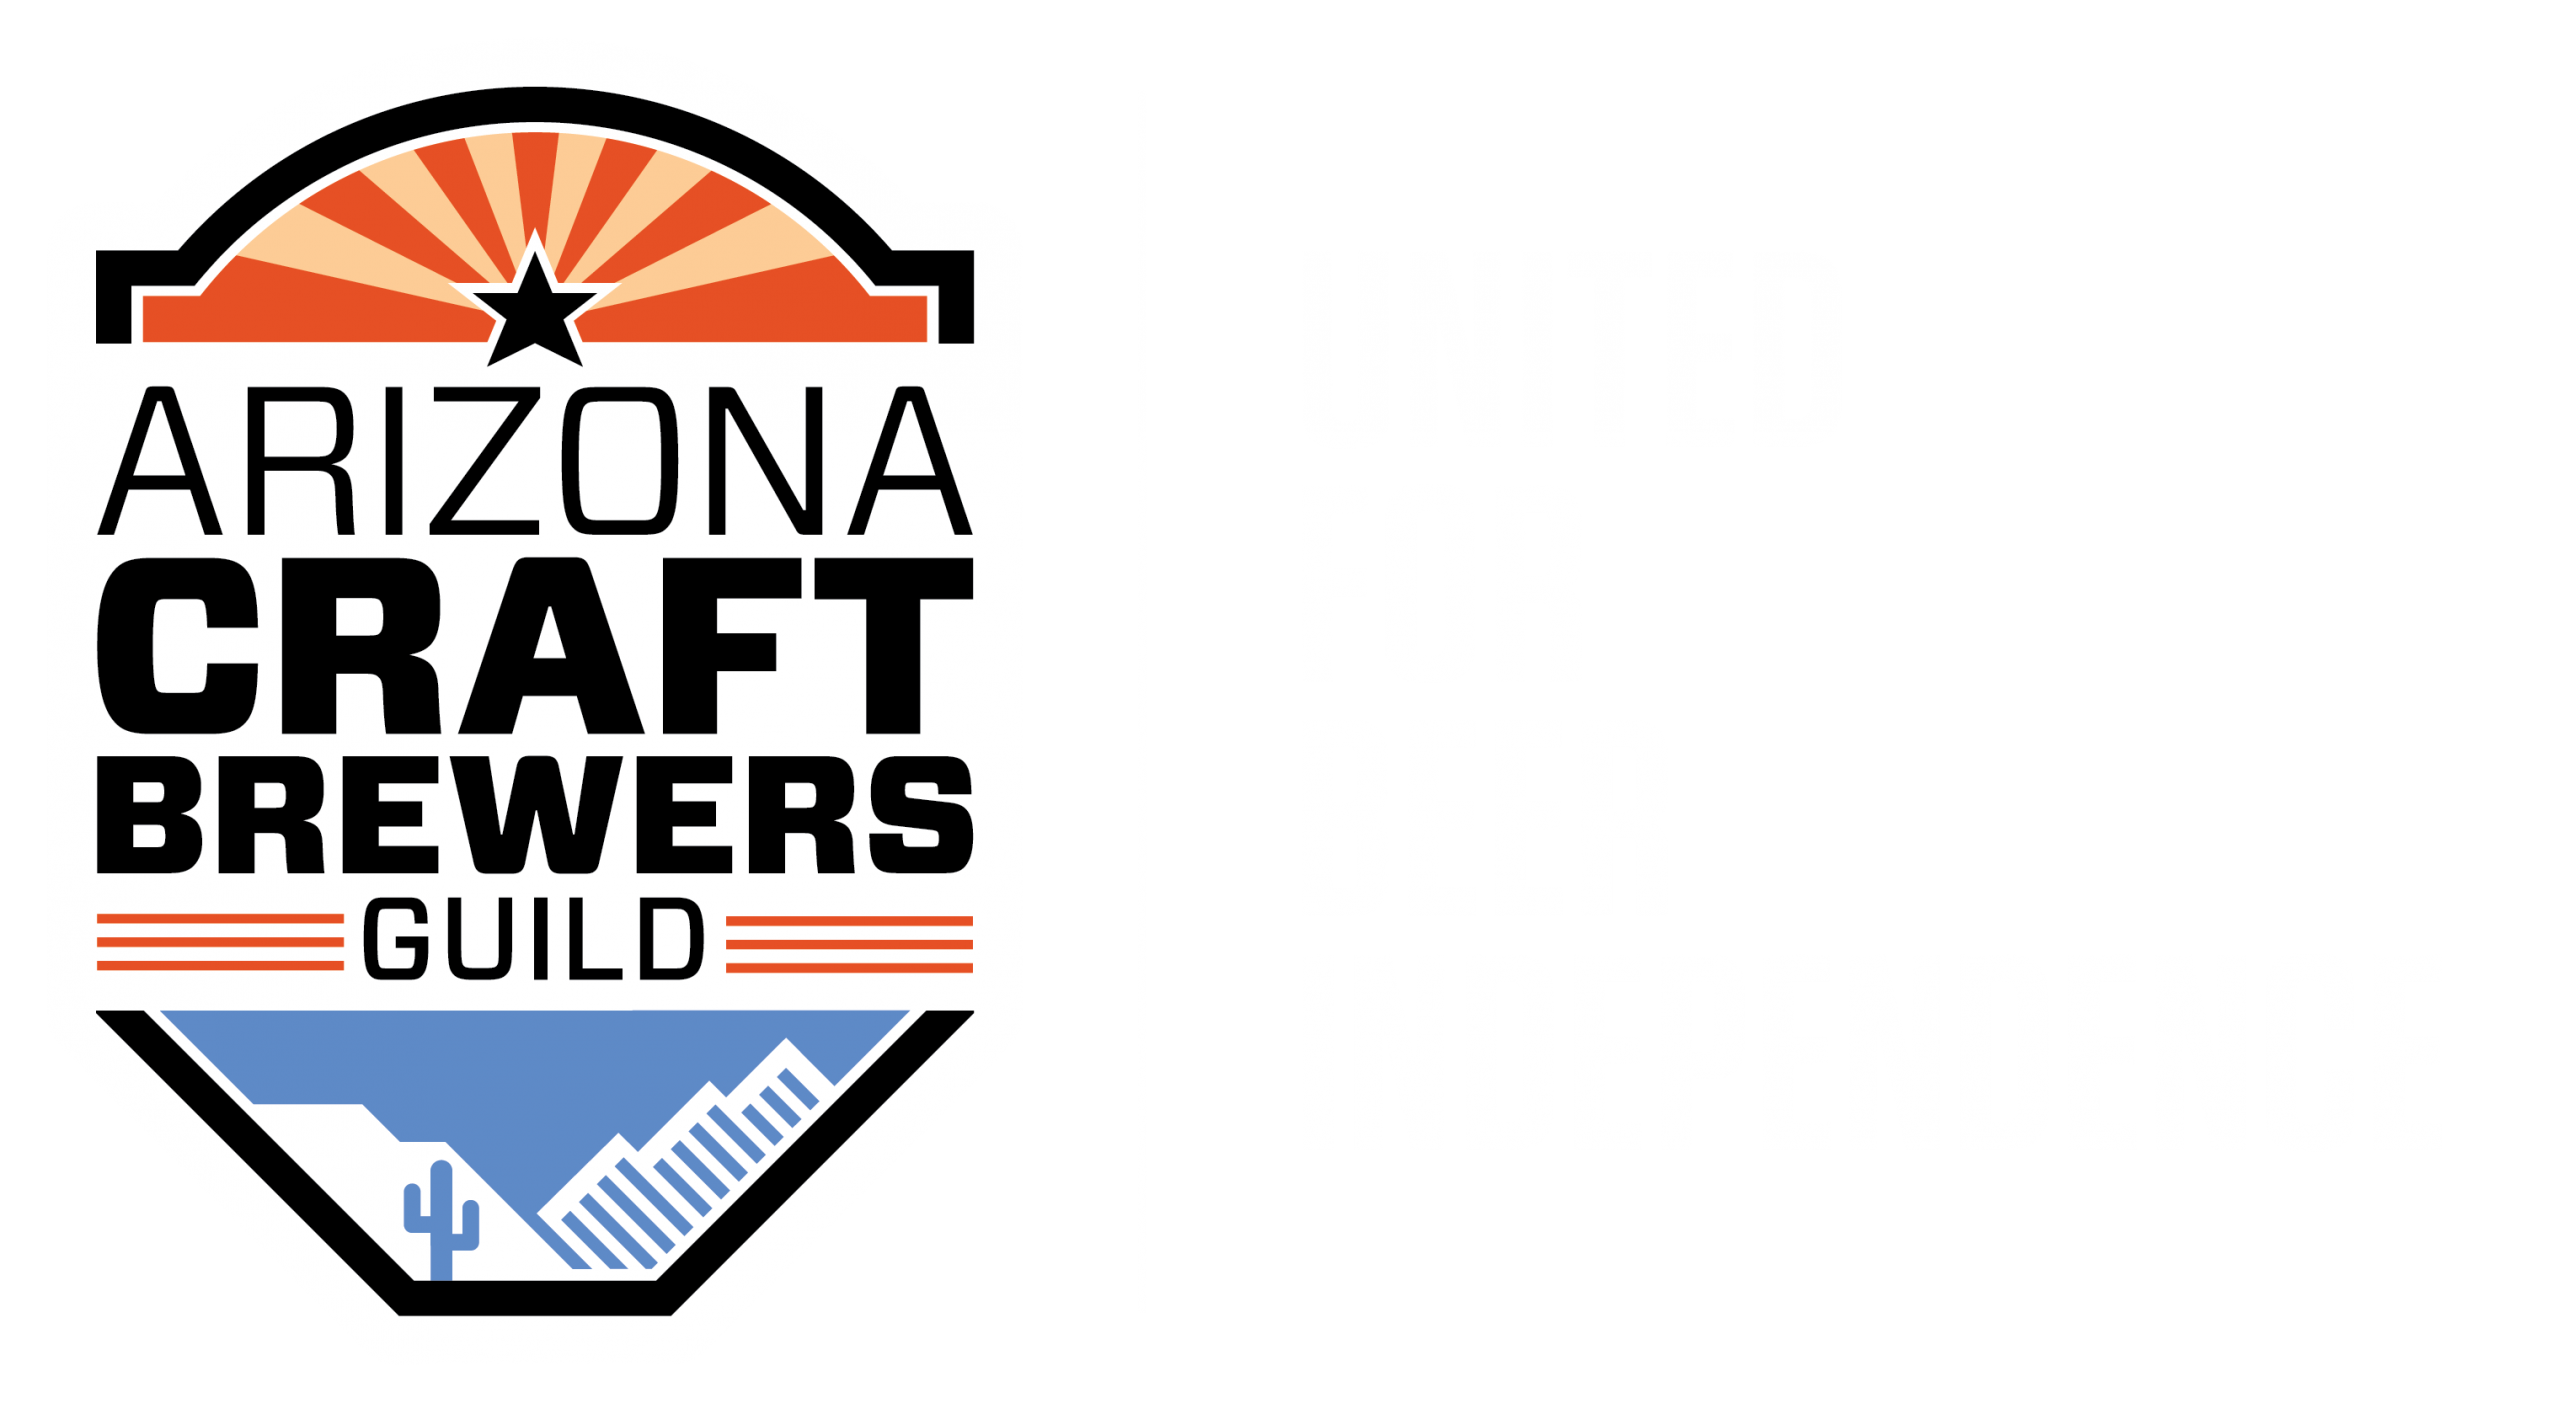 Crescent Crown | Arizona Craft Brewers Guild